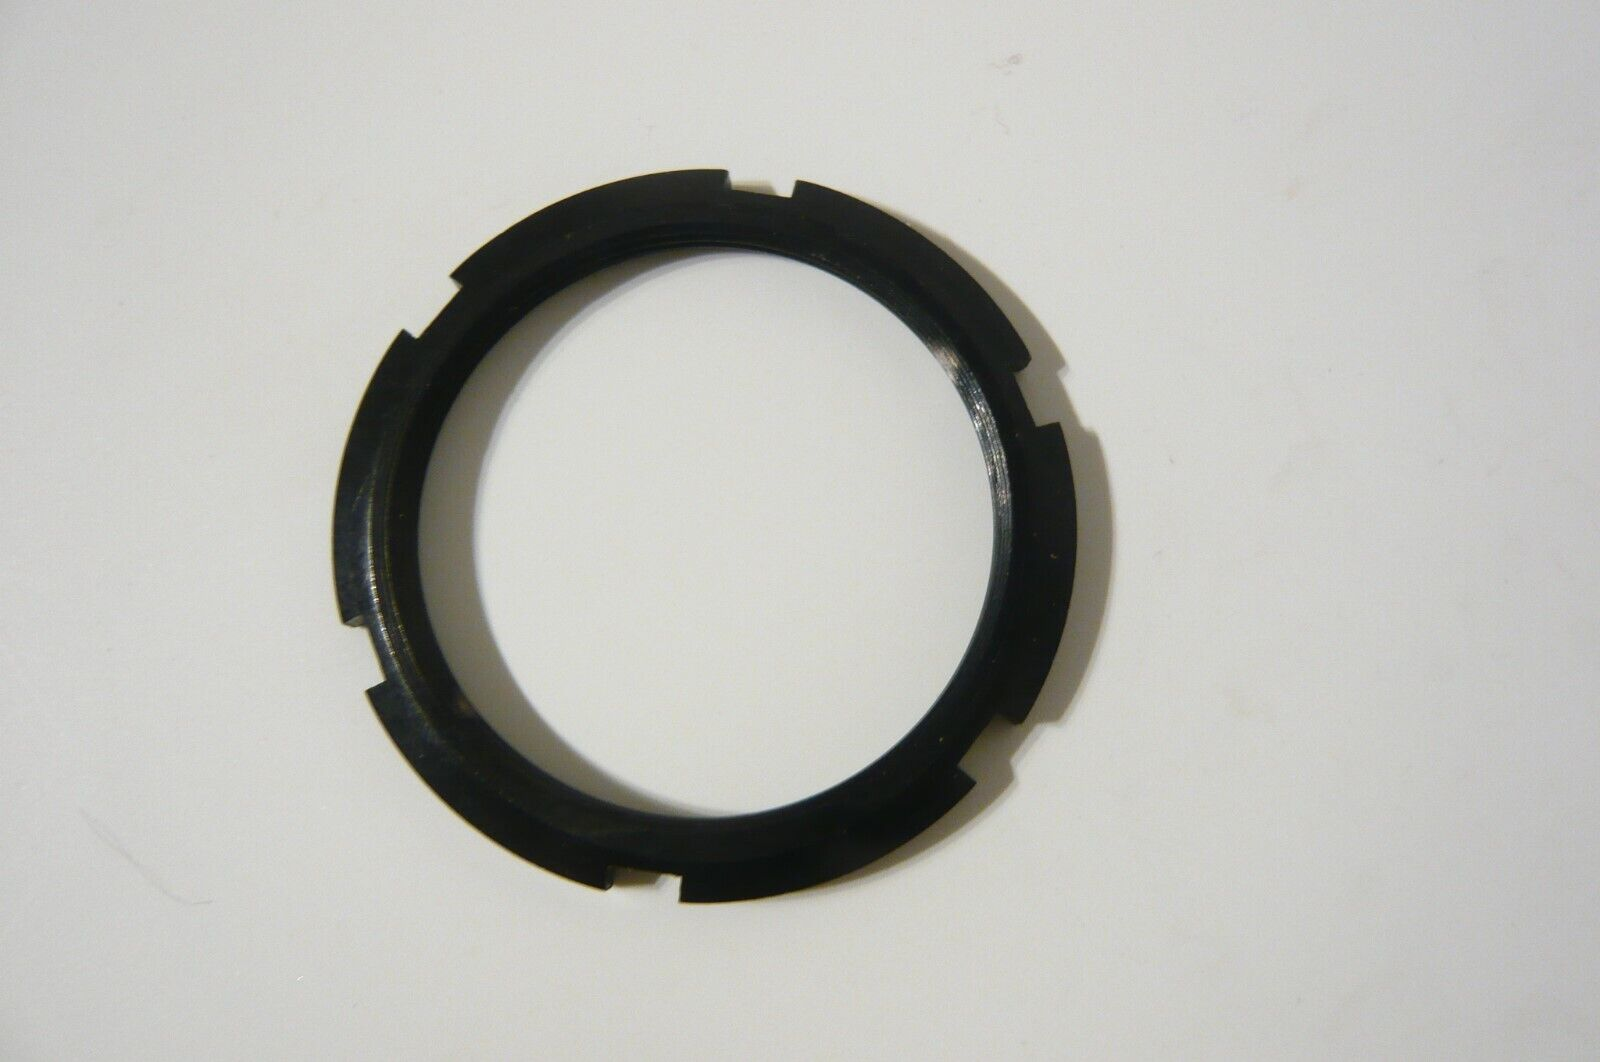 Shimano Dura Ace 7400 Italian 36 x 24 thread bottom bracket lockring